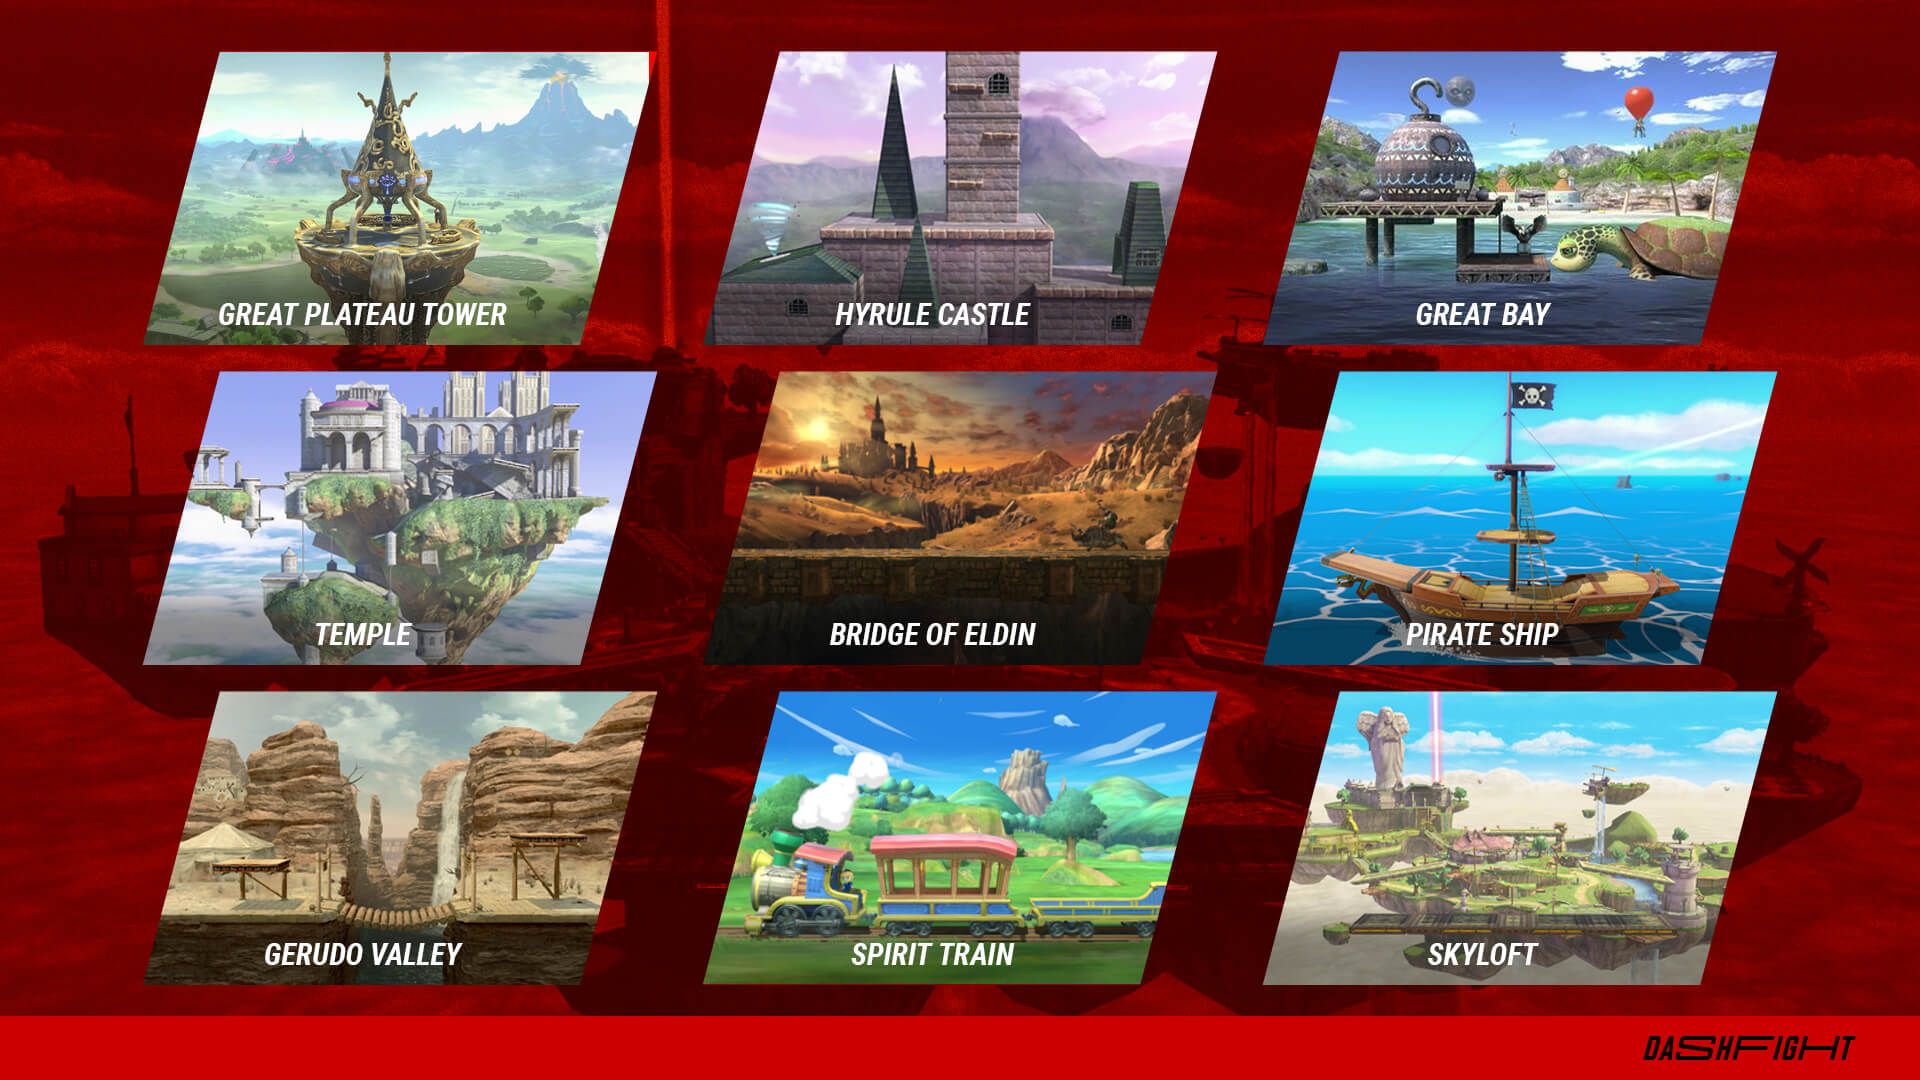 Zelda stages in Super Smash Bros. Ultimate